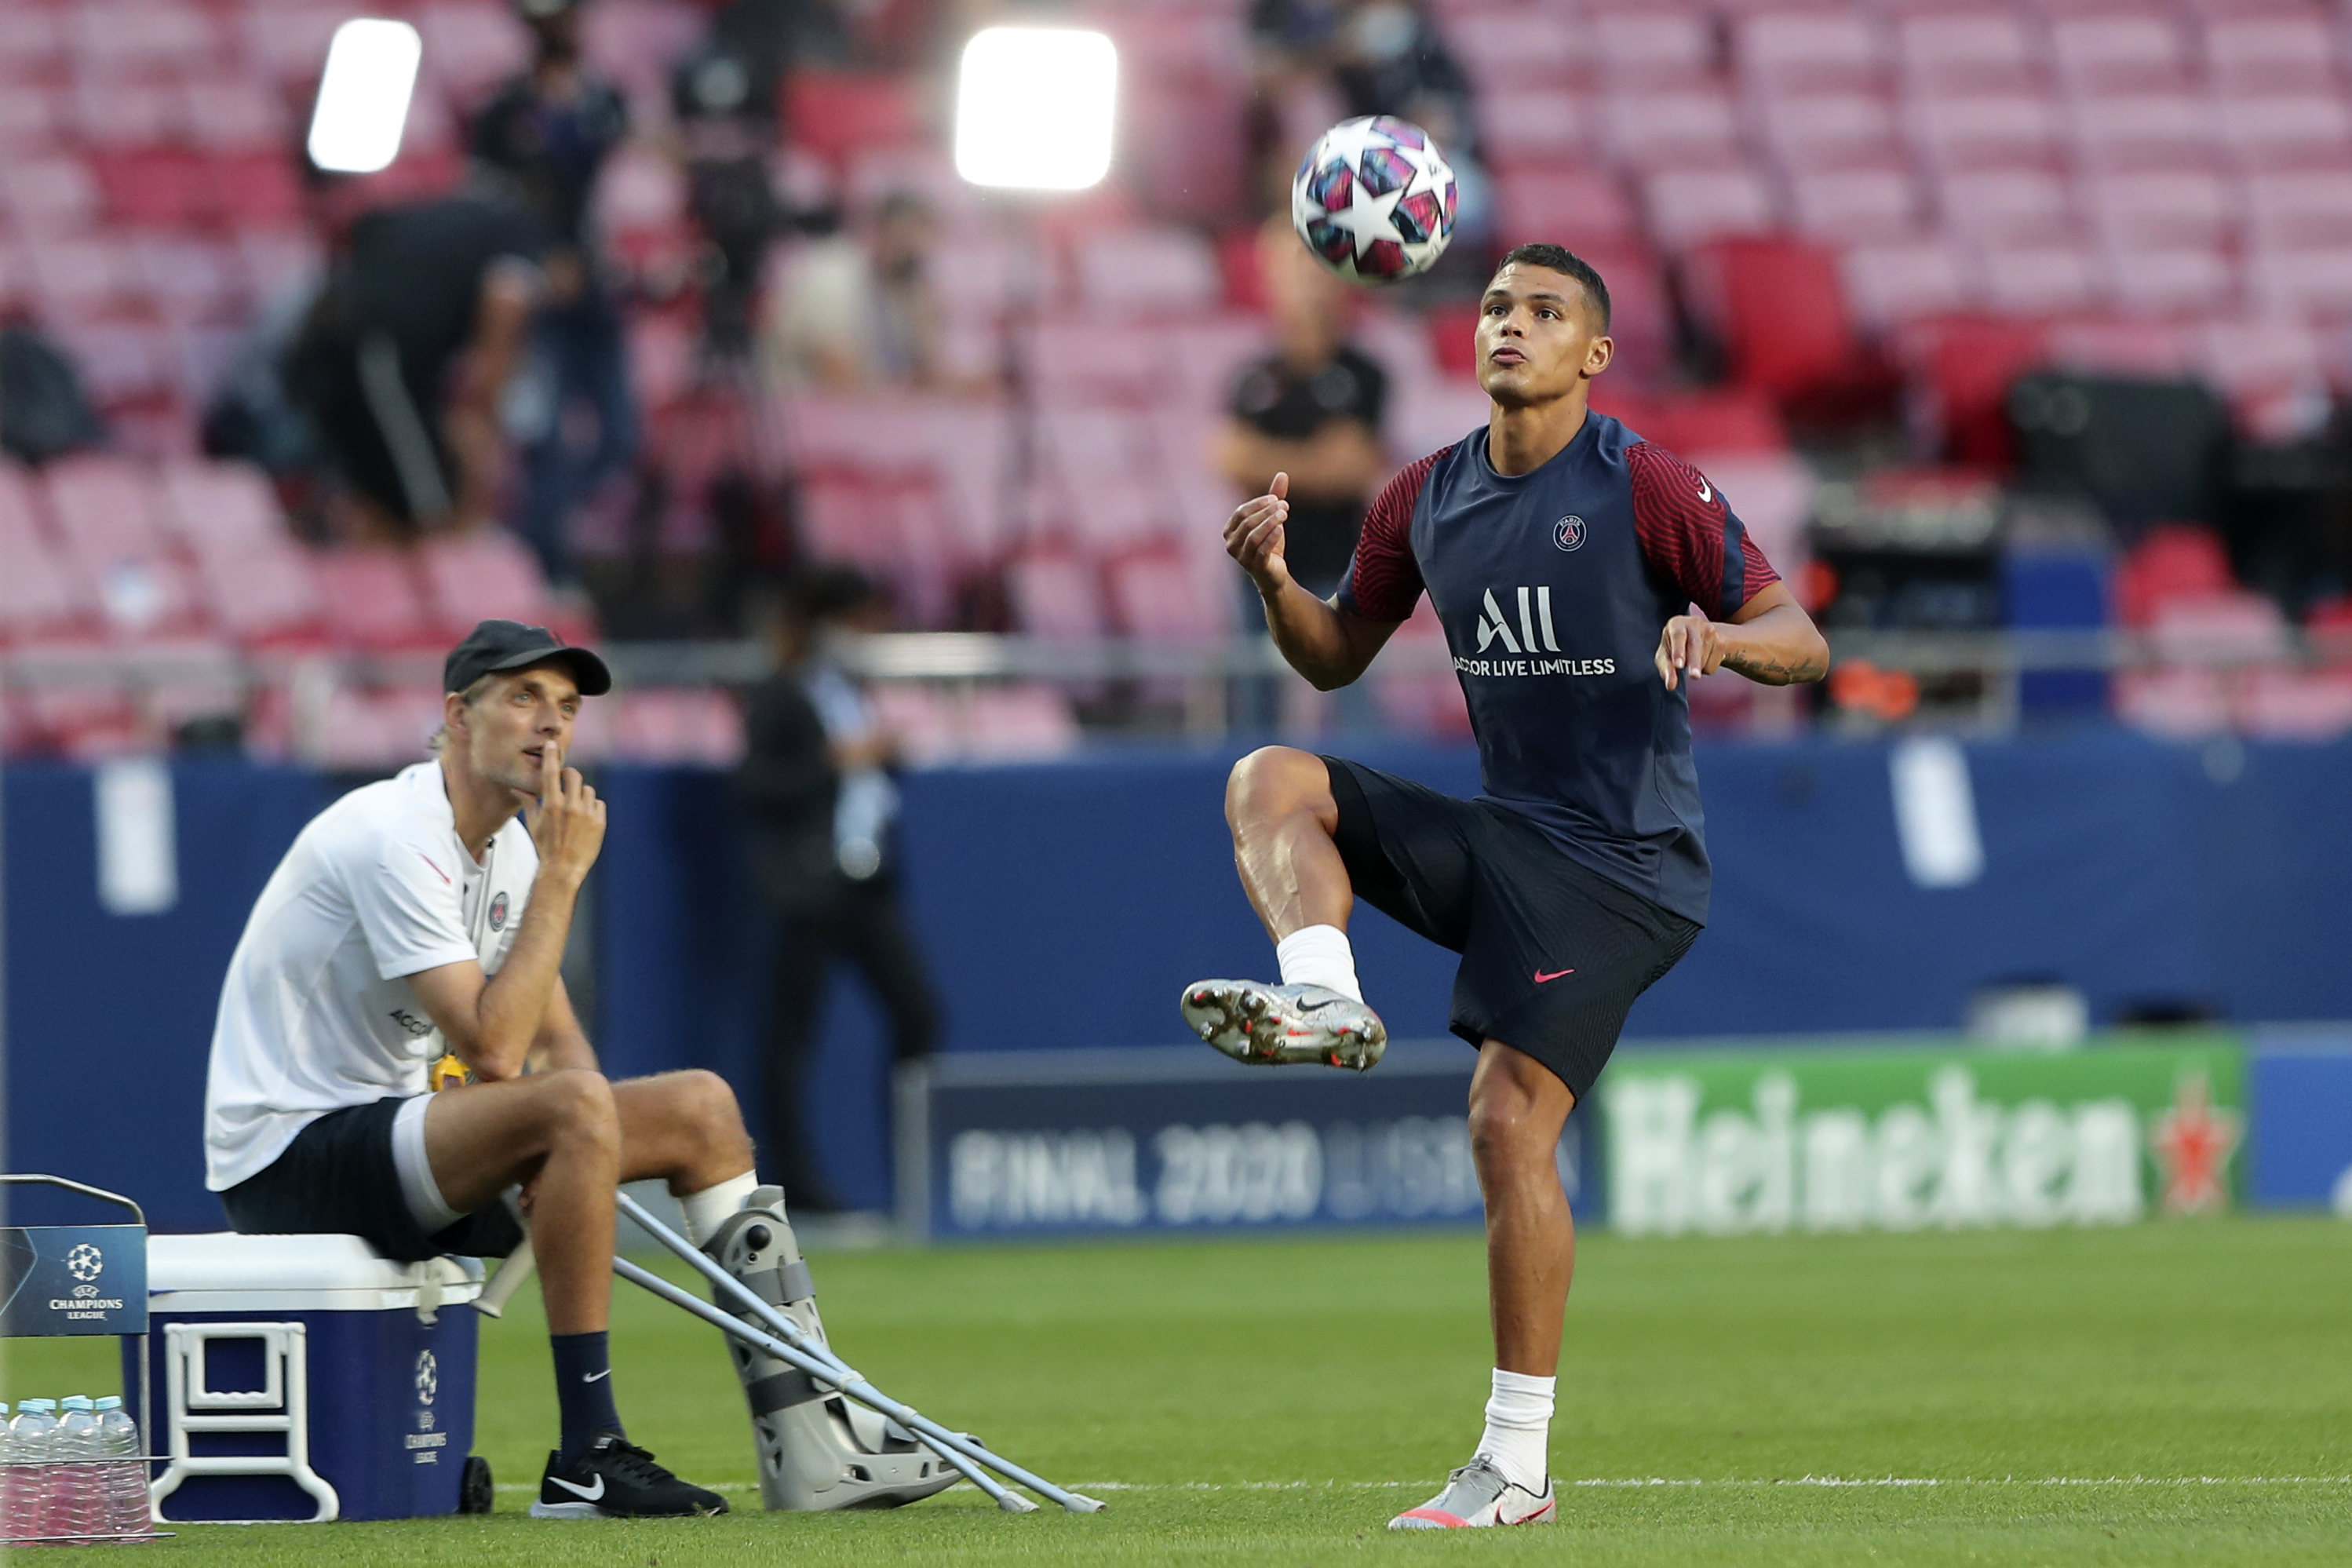 Psg Vs Marseille Free Live Stream 9 13 20 Watch Ligue 1 Online Time Tv Channel Nj Com